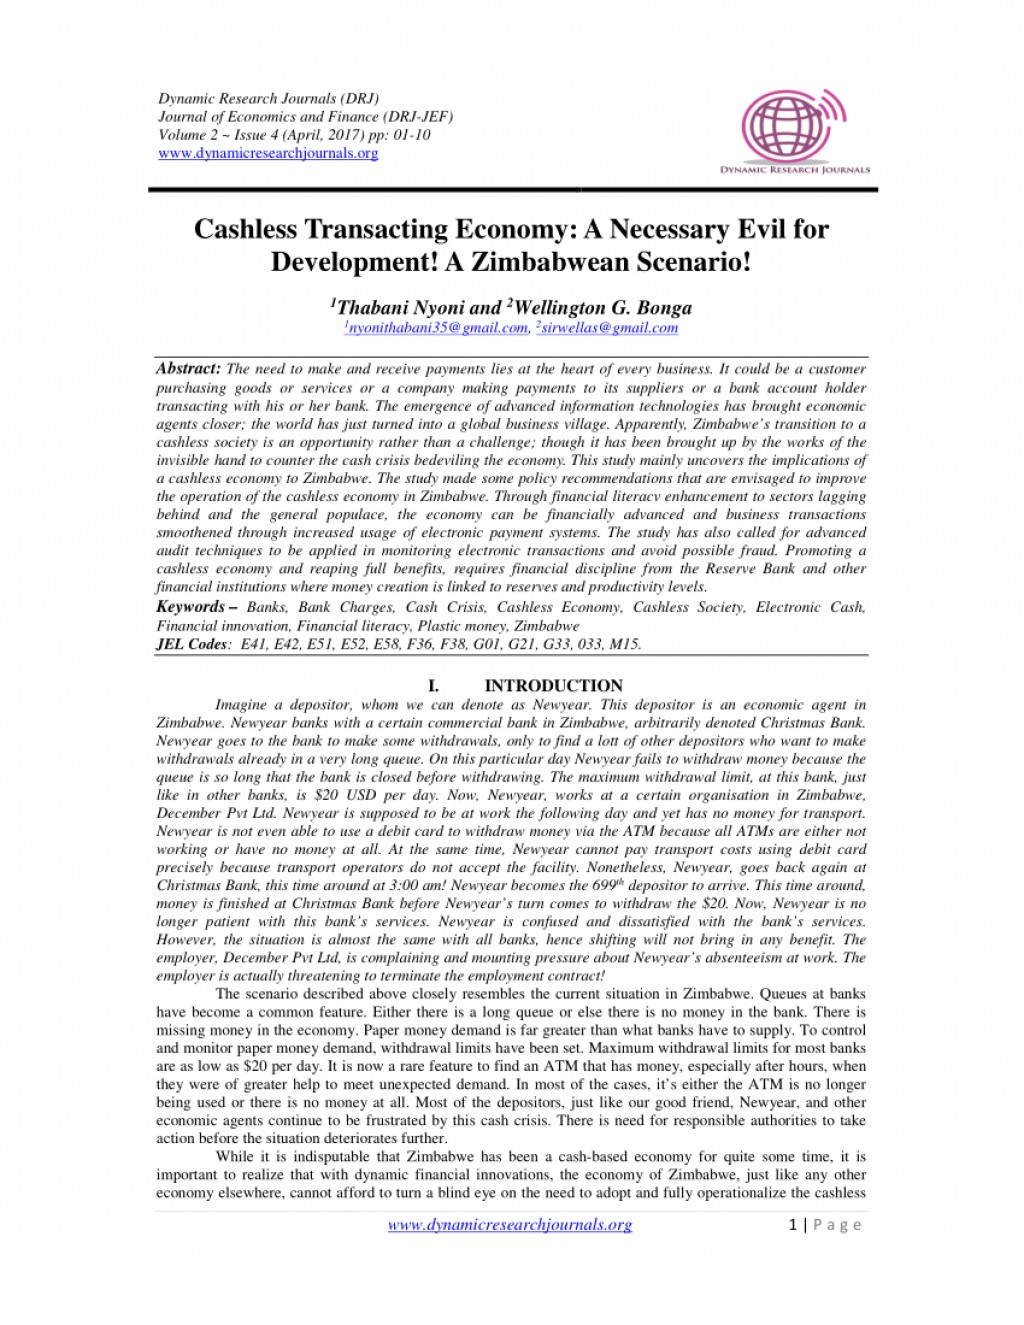 003 Largepreview Cash To Cashless Economy Research Rare Paper Large